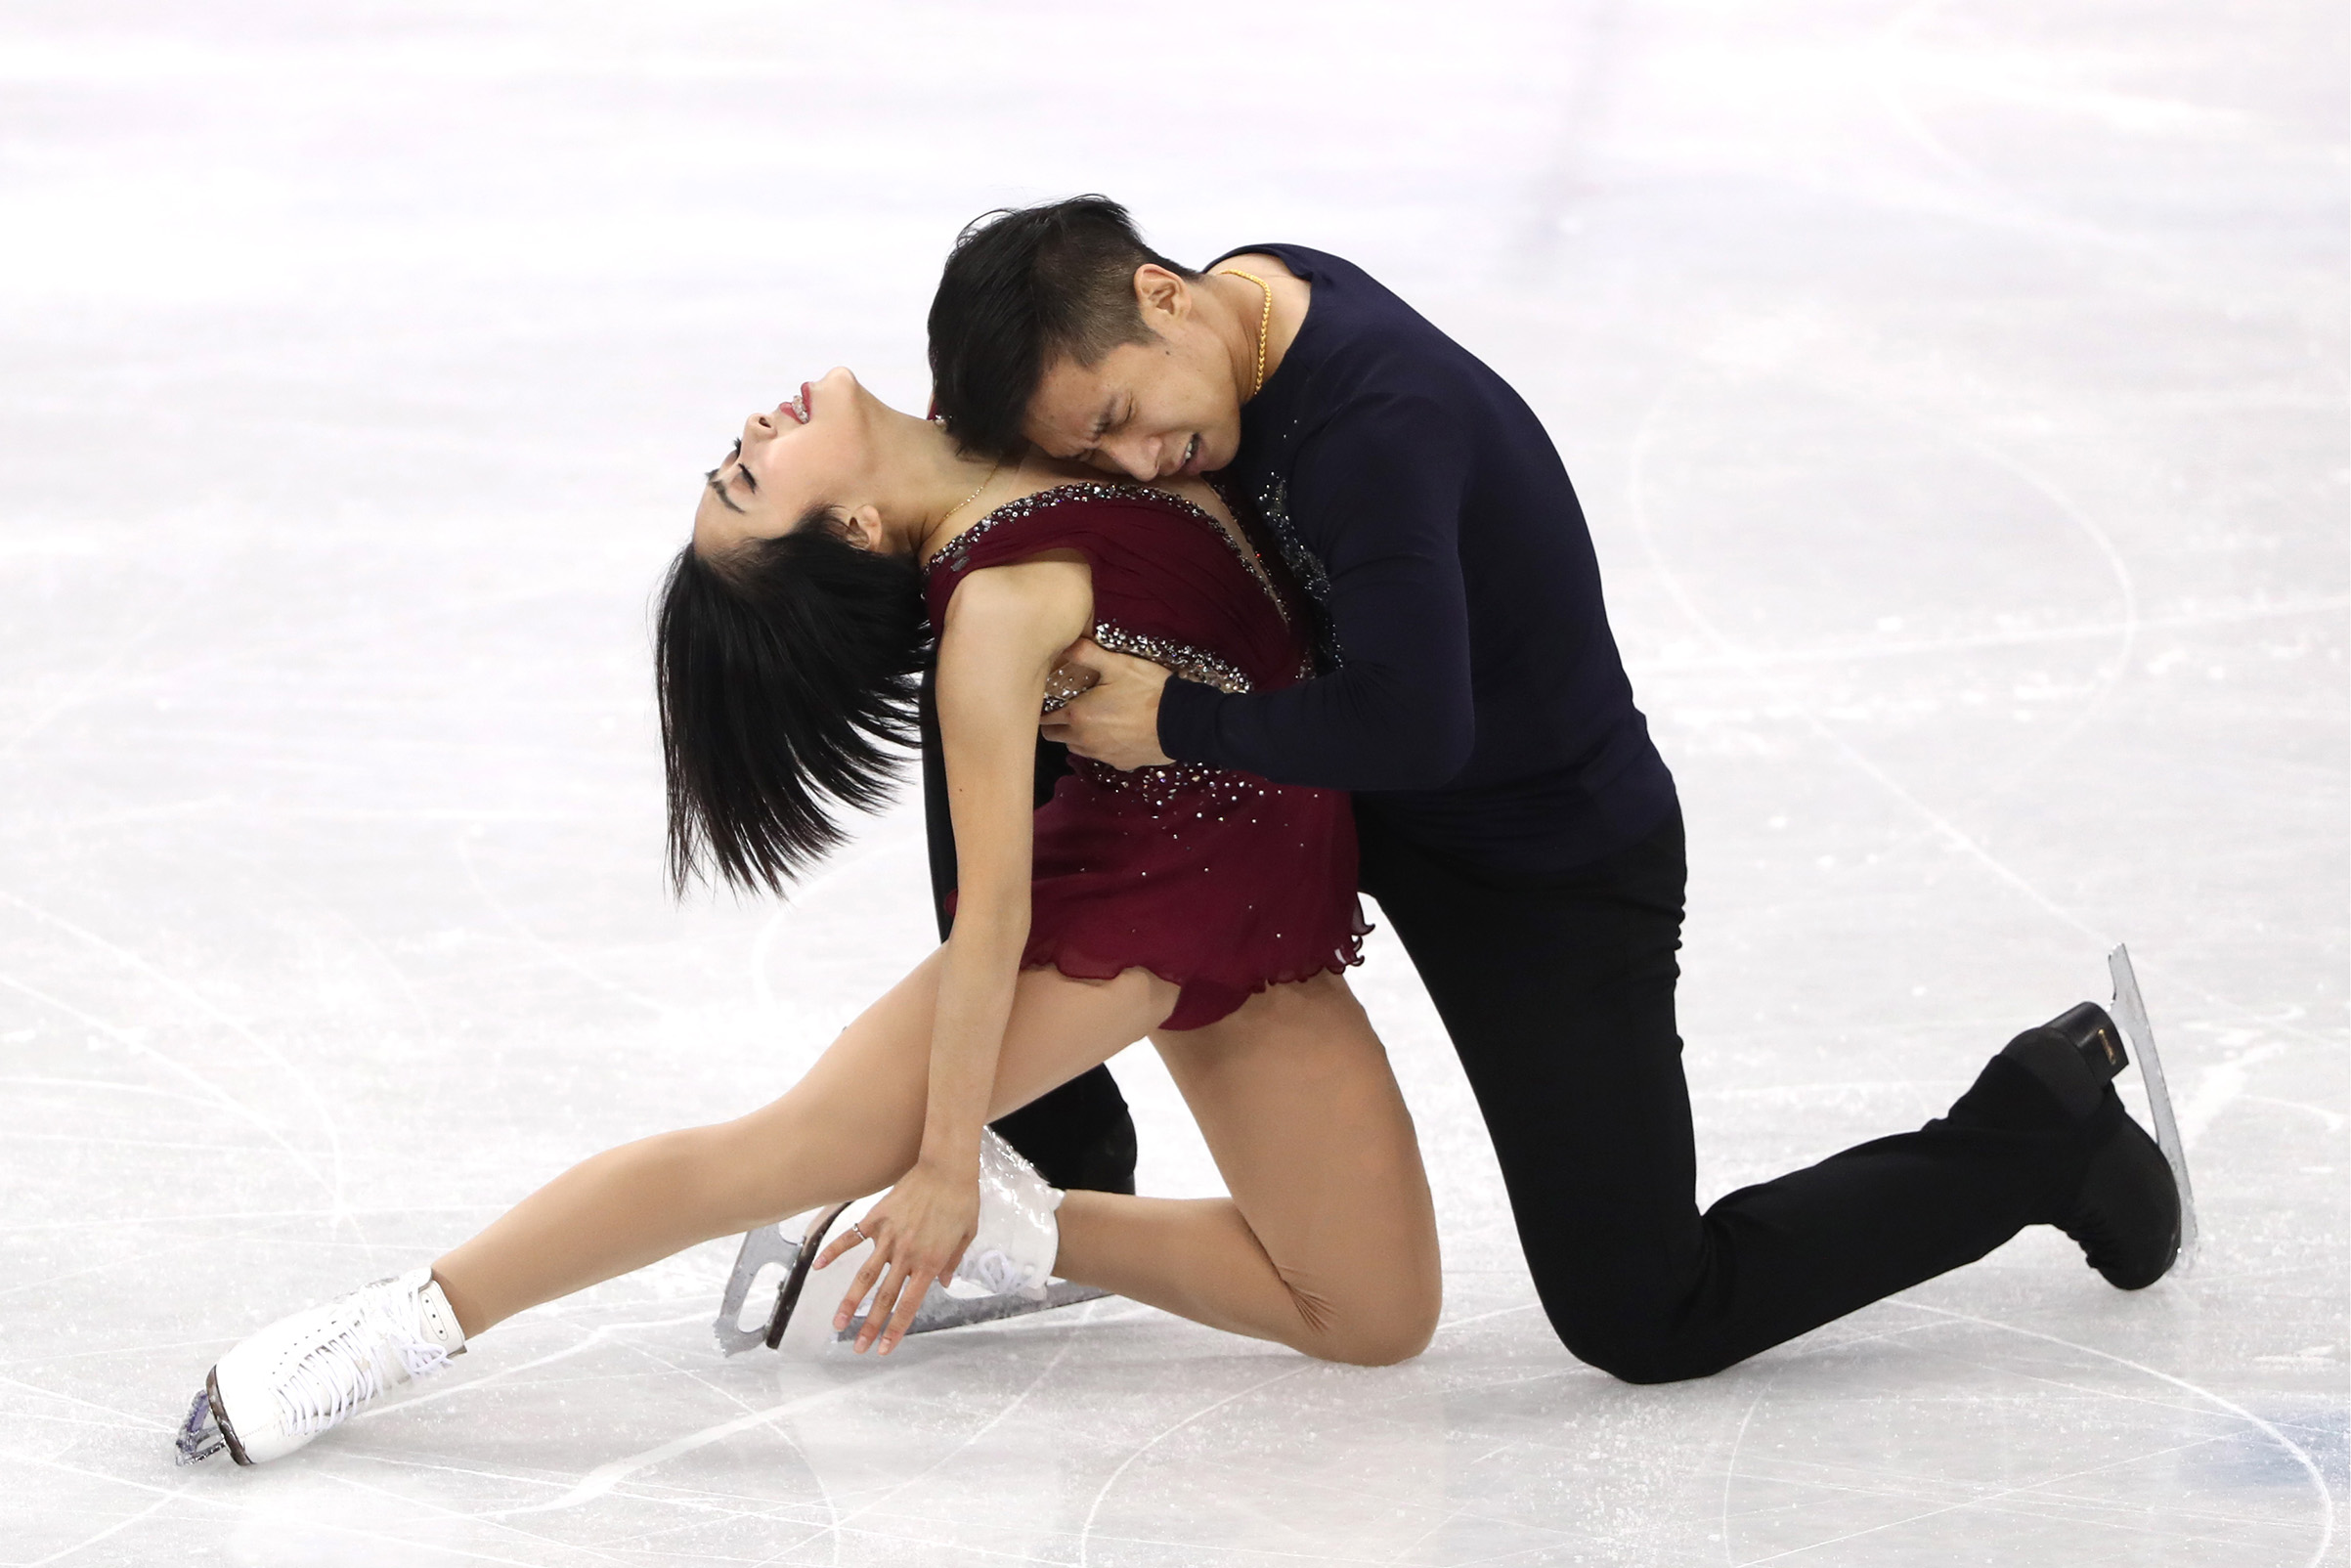 China's pair skaters Sui Wenjing and Han Cong perform their short program during a figure skating event at the 2018 Winter Olympic Games at Gangneung Ice Arena.